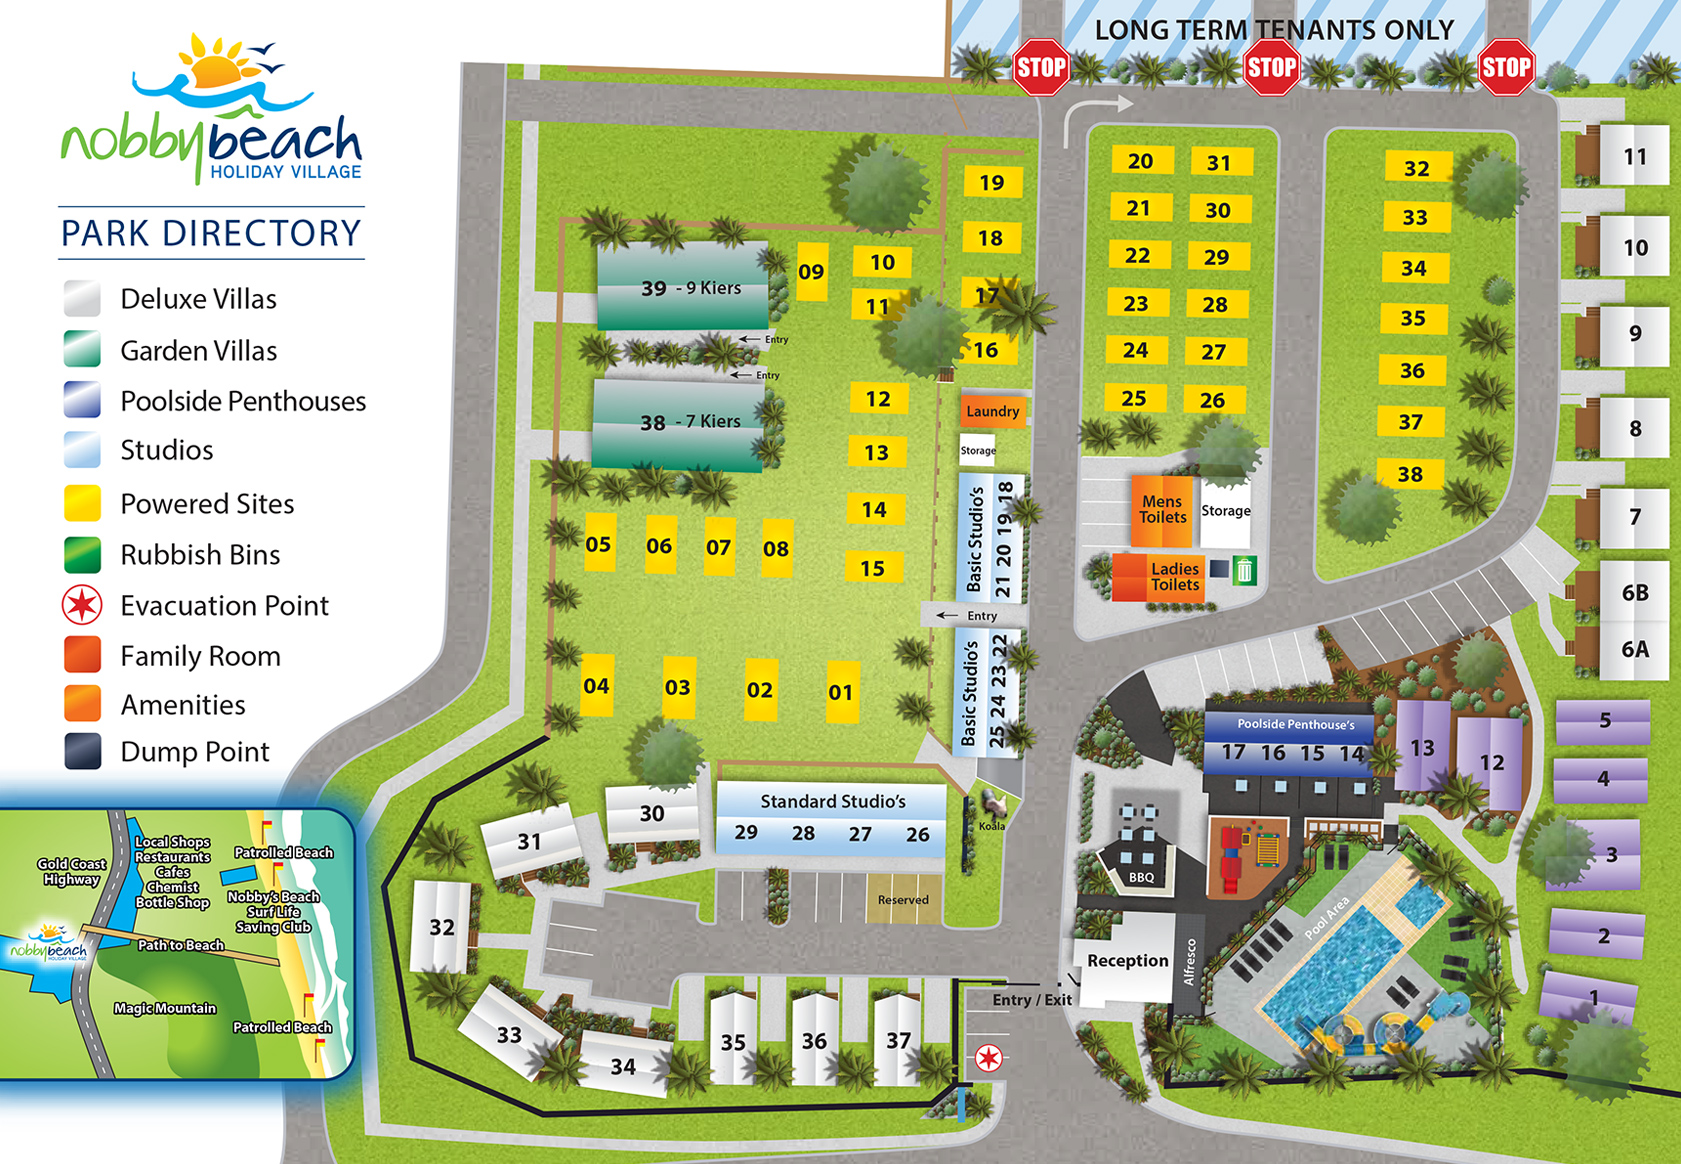 Nobby Beach Holiday Village Park Directory